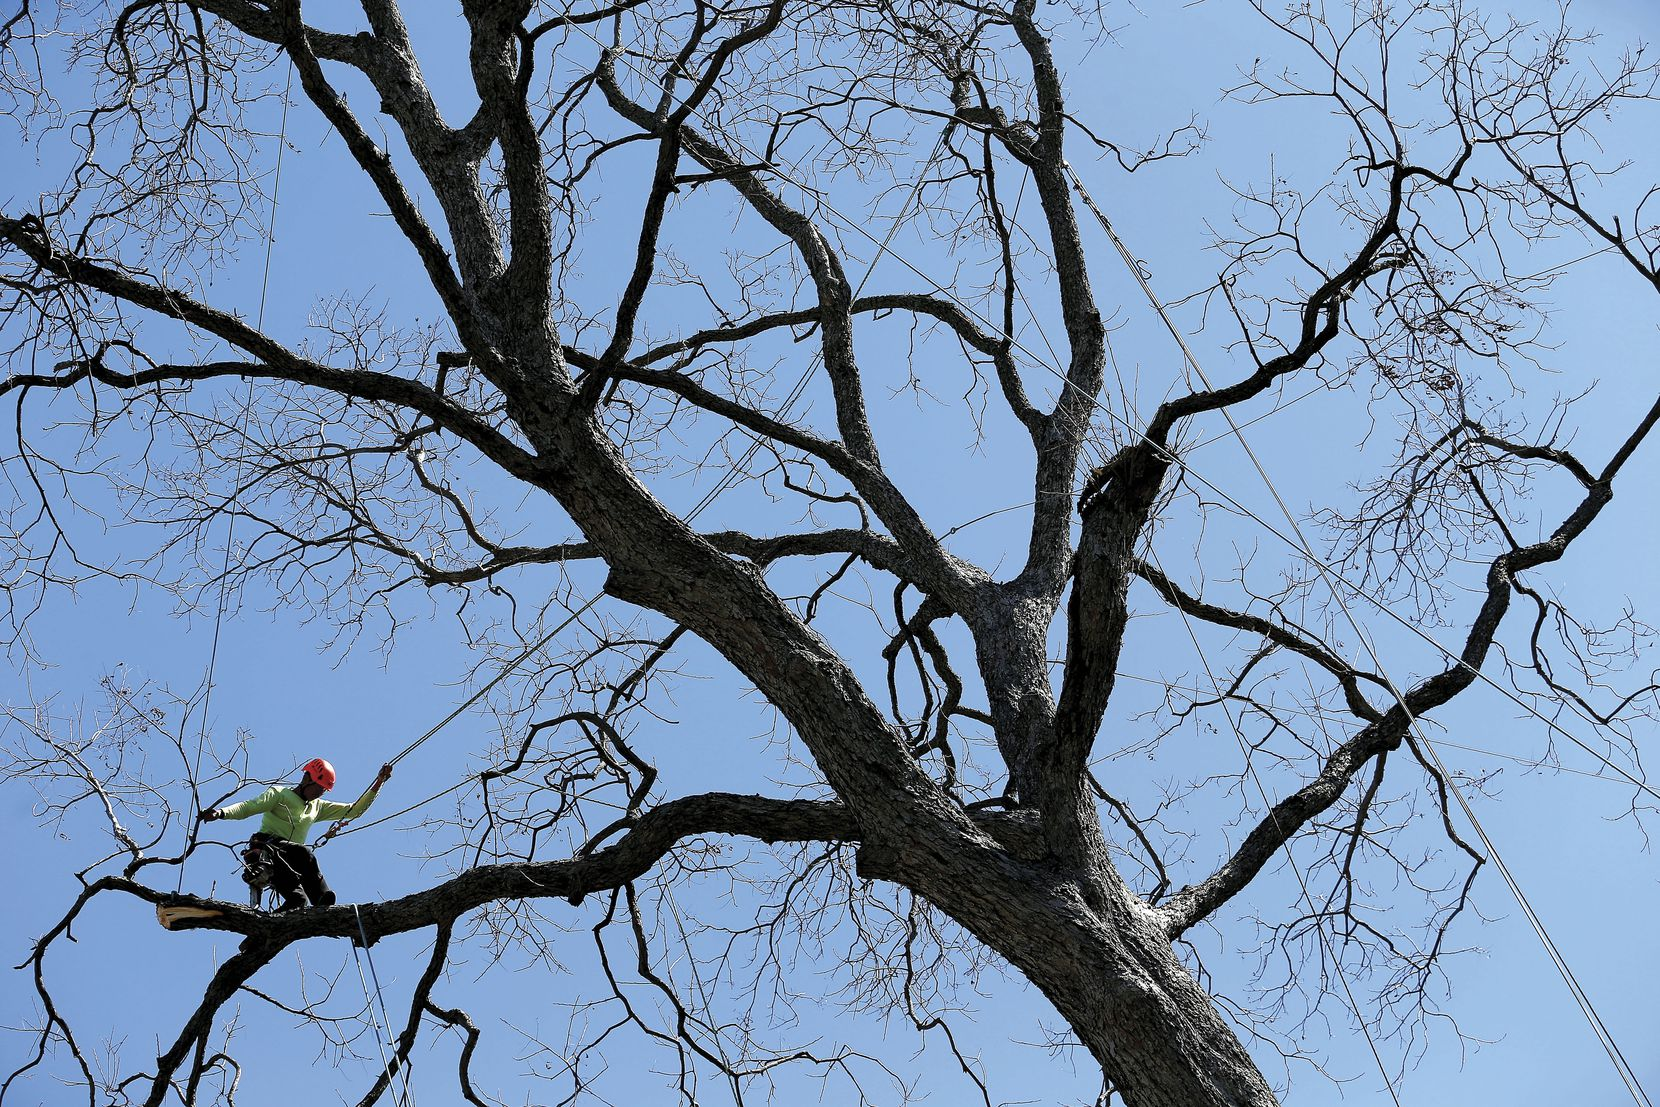 Foreman Miguel Pastenes, who works for Arborilogical Services, was perched in a pecan tree near Fernald Avenue and Dixfield Drive in Dallas on March 3. In April, Pastenes placed second in his category in the International Tree Climbing Competition in San Antonio.